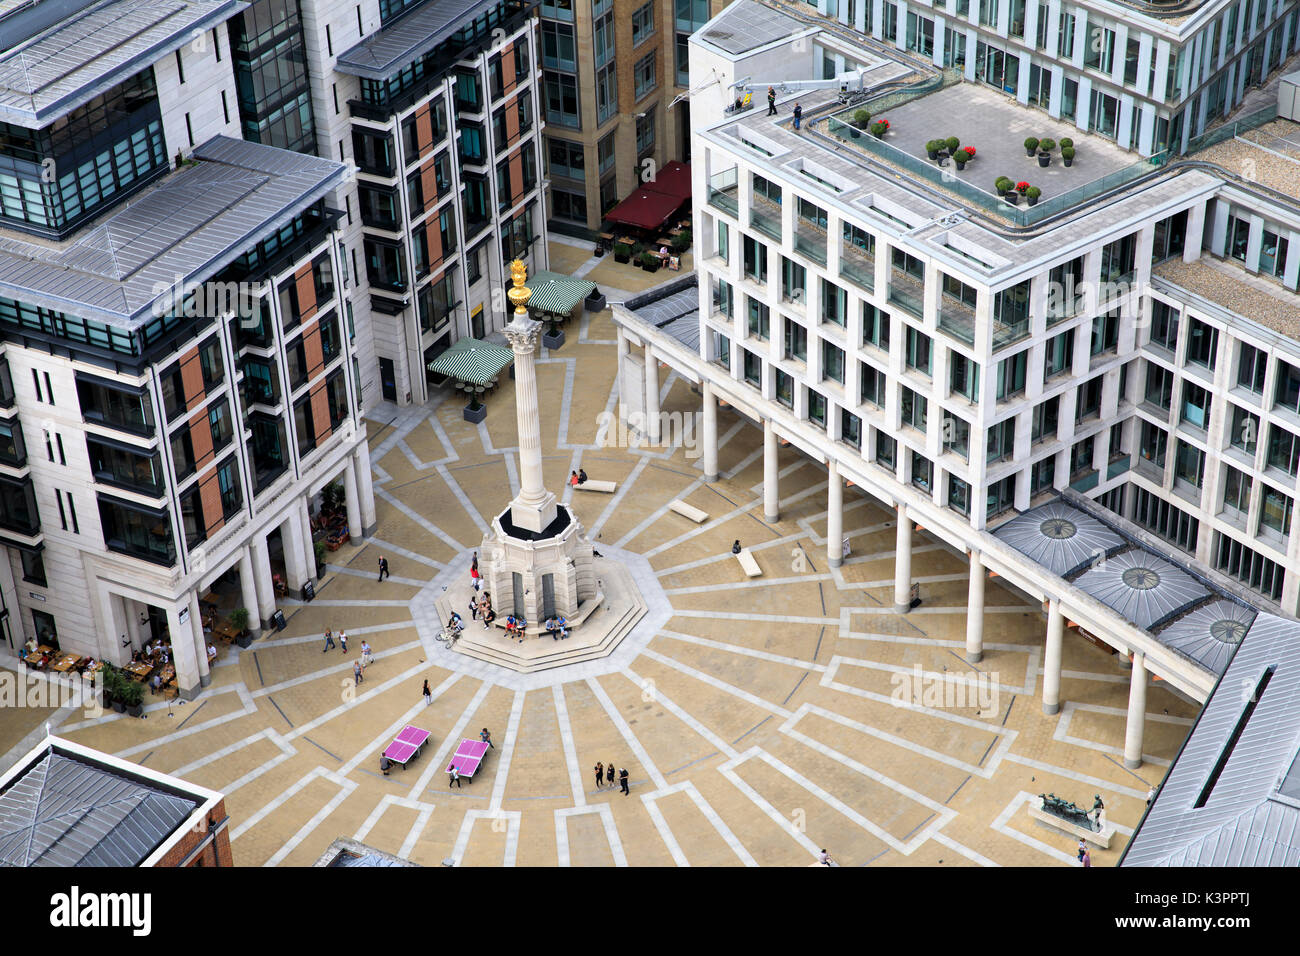 Paternoster Square in London, as seen from the top of St. Paul's Cathedral. - Stock Image